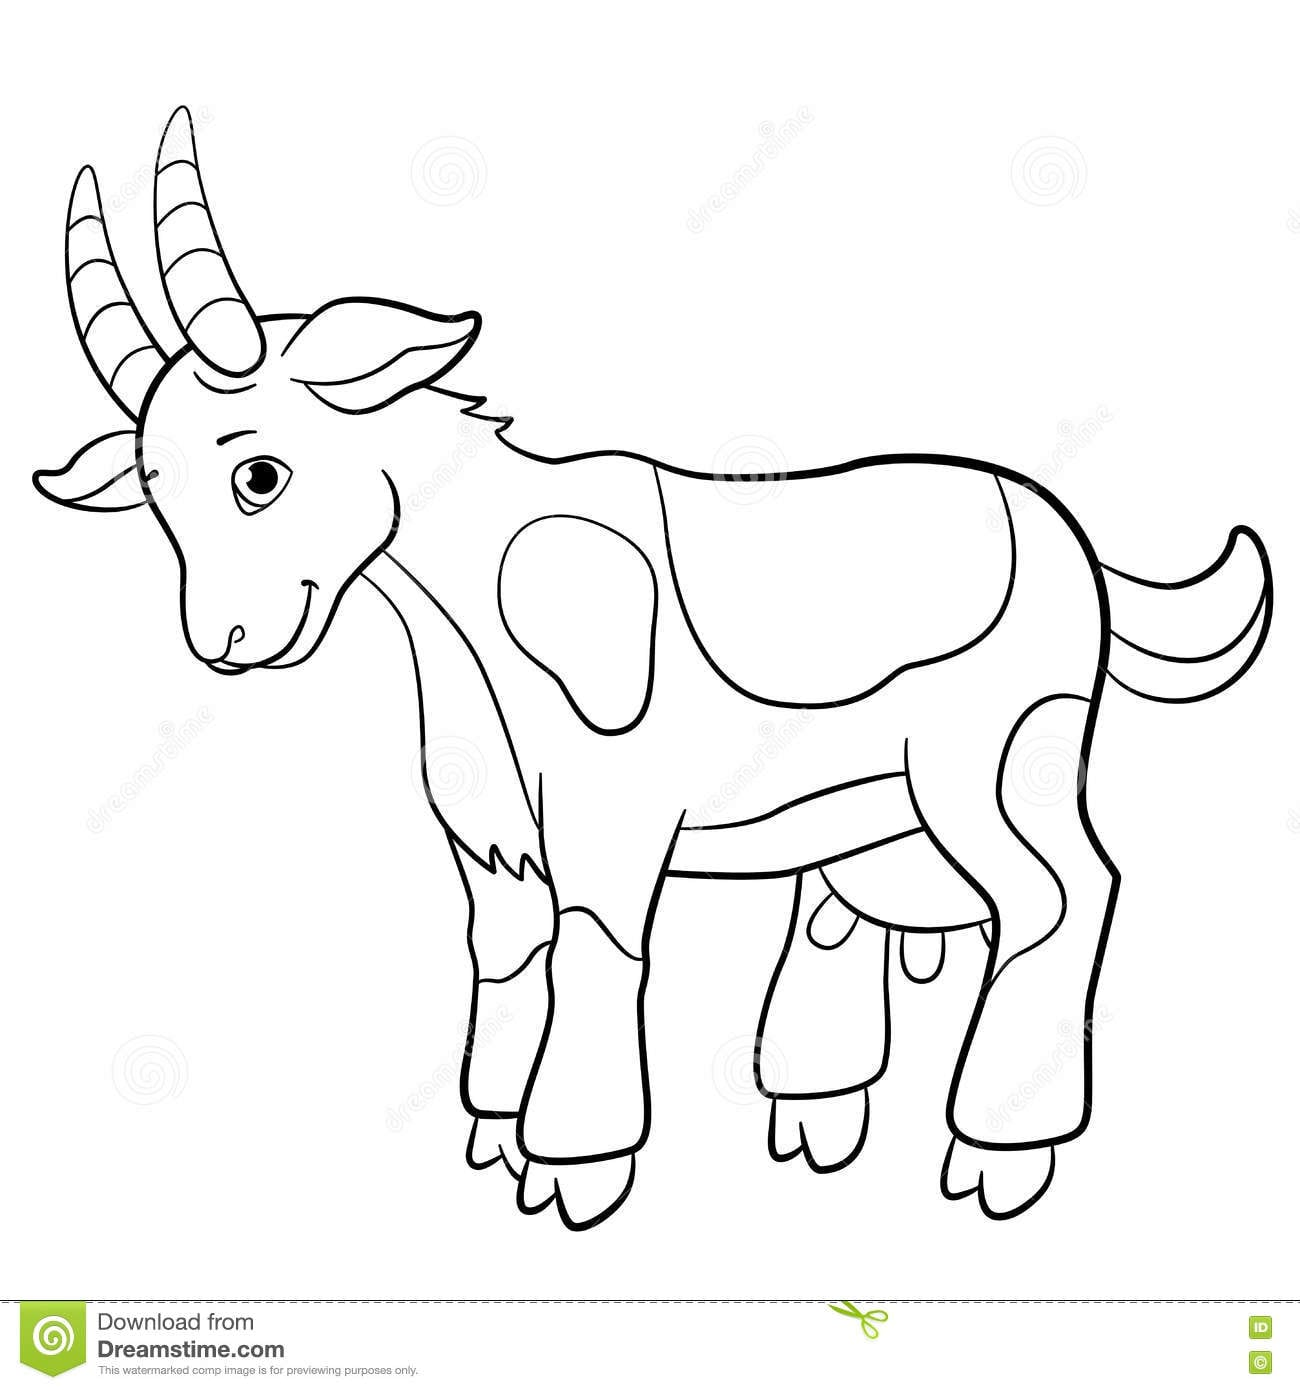 coloring pages of goats - photo#8